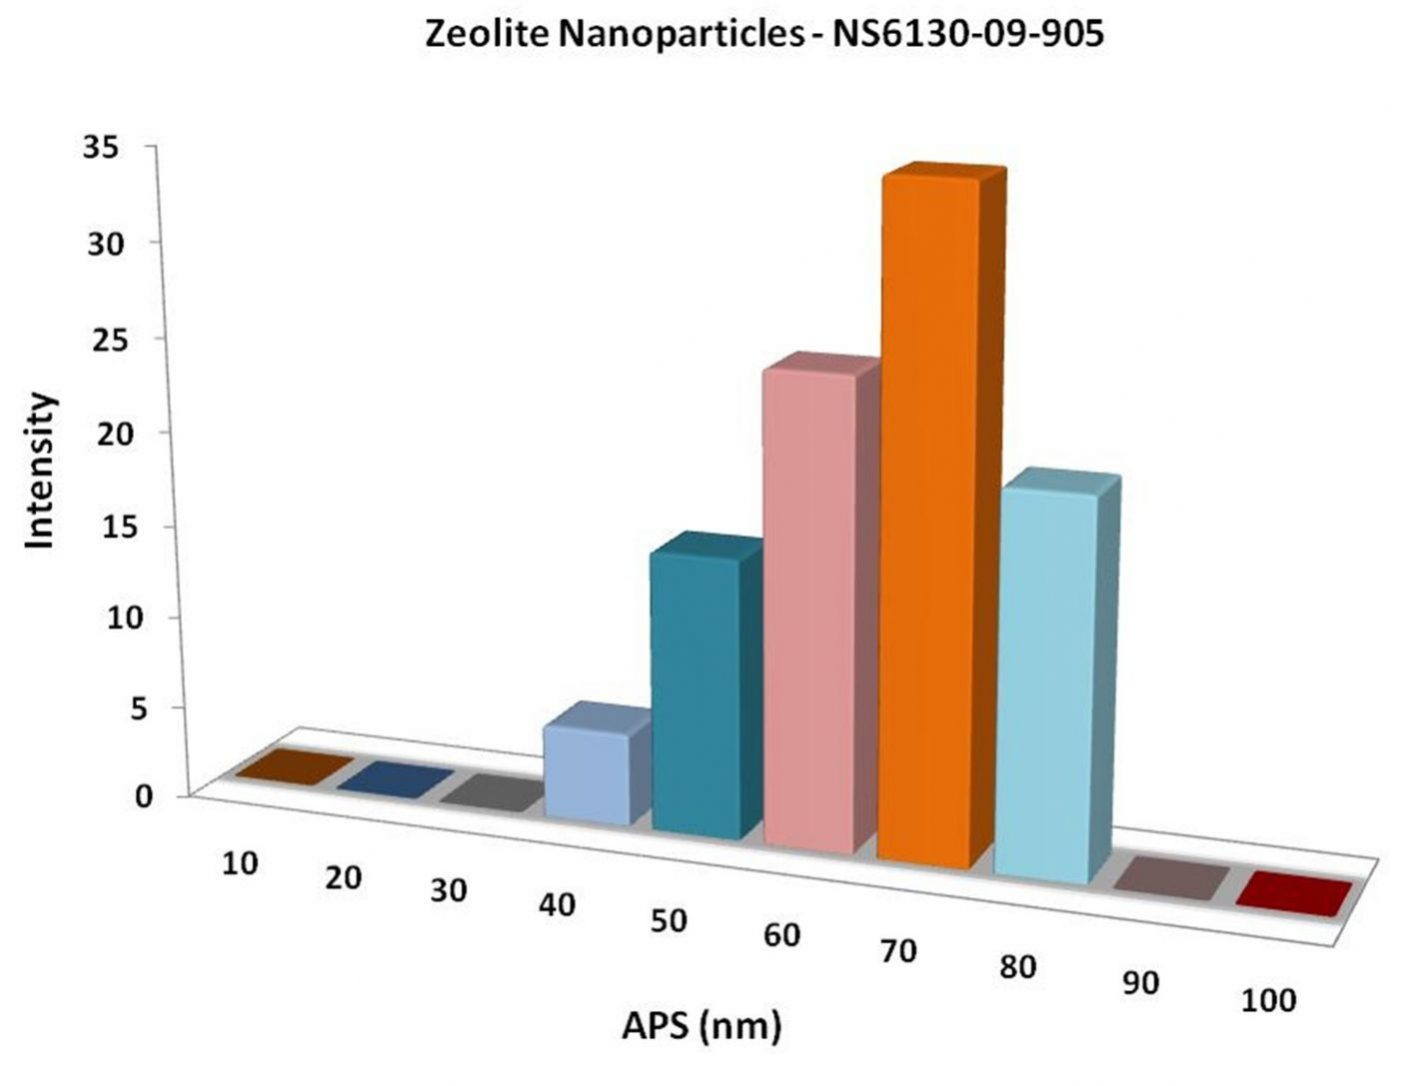 Particles Size Analysis - Zeolite Nanoparticles